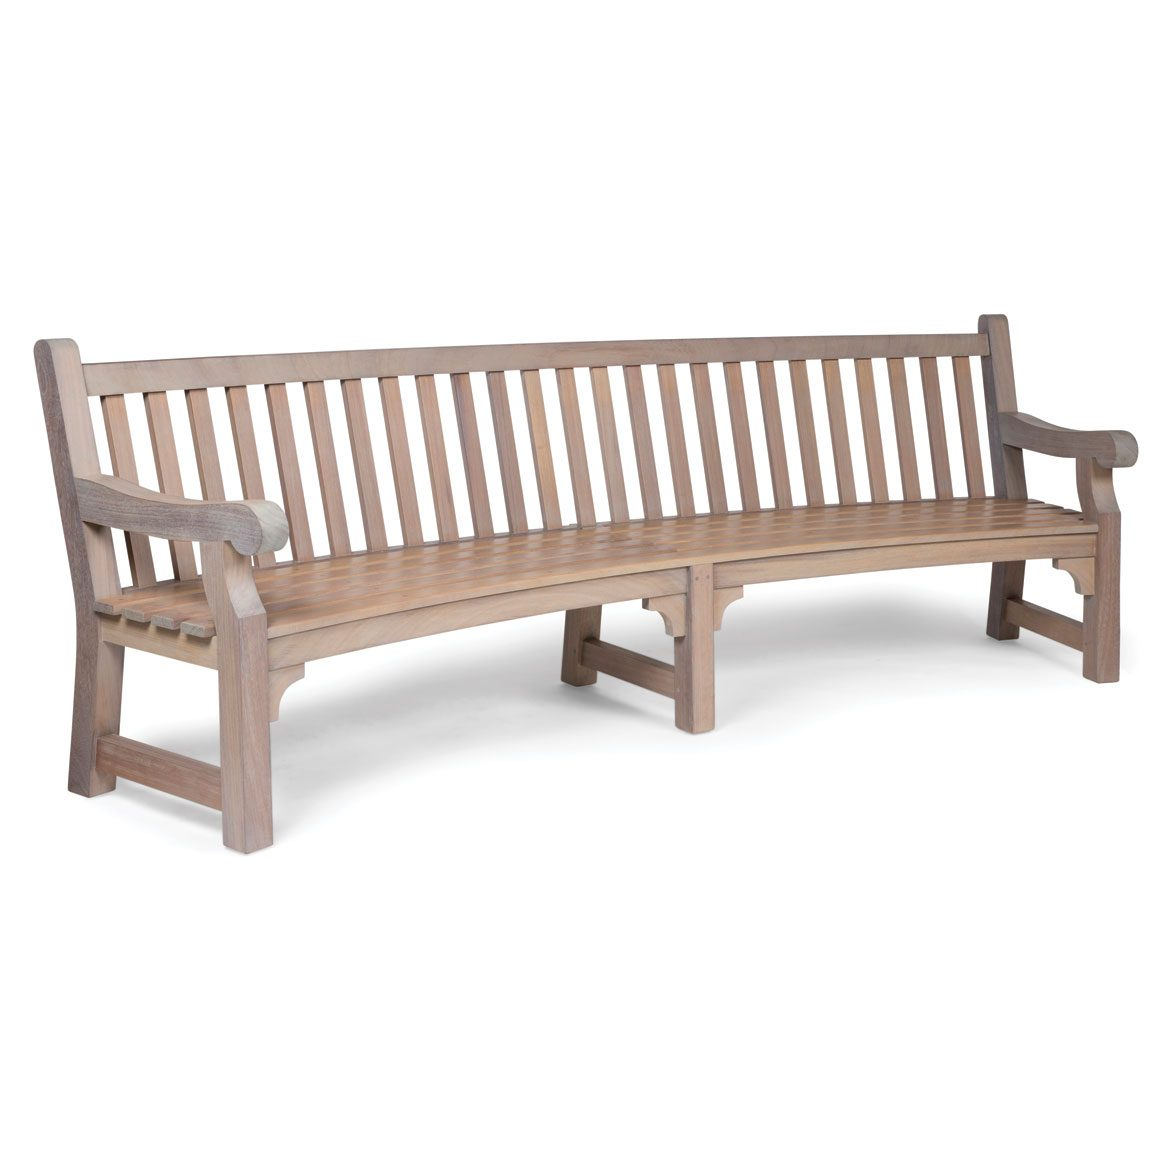 Amazing Curved Garden Bench Gmtry Best Dining Table And Chair Ideas Images Gmtryco